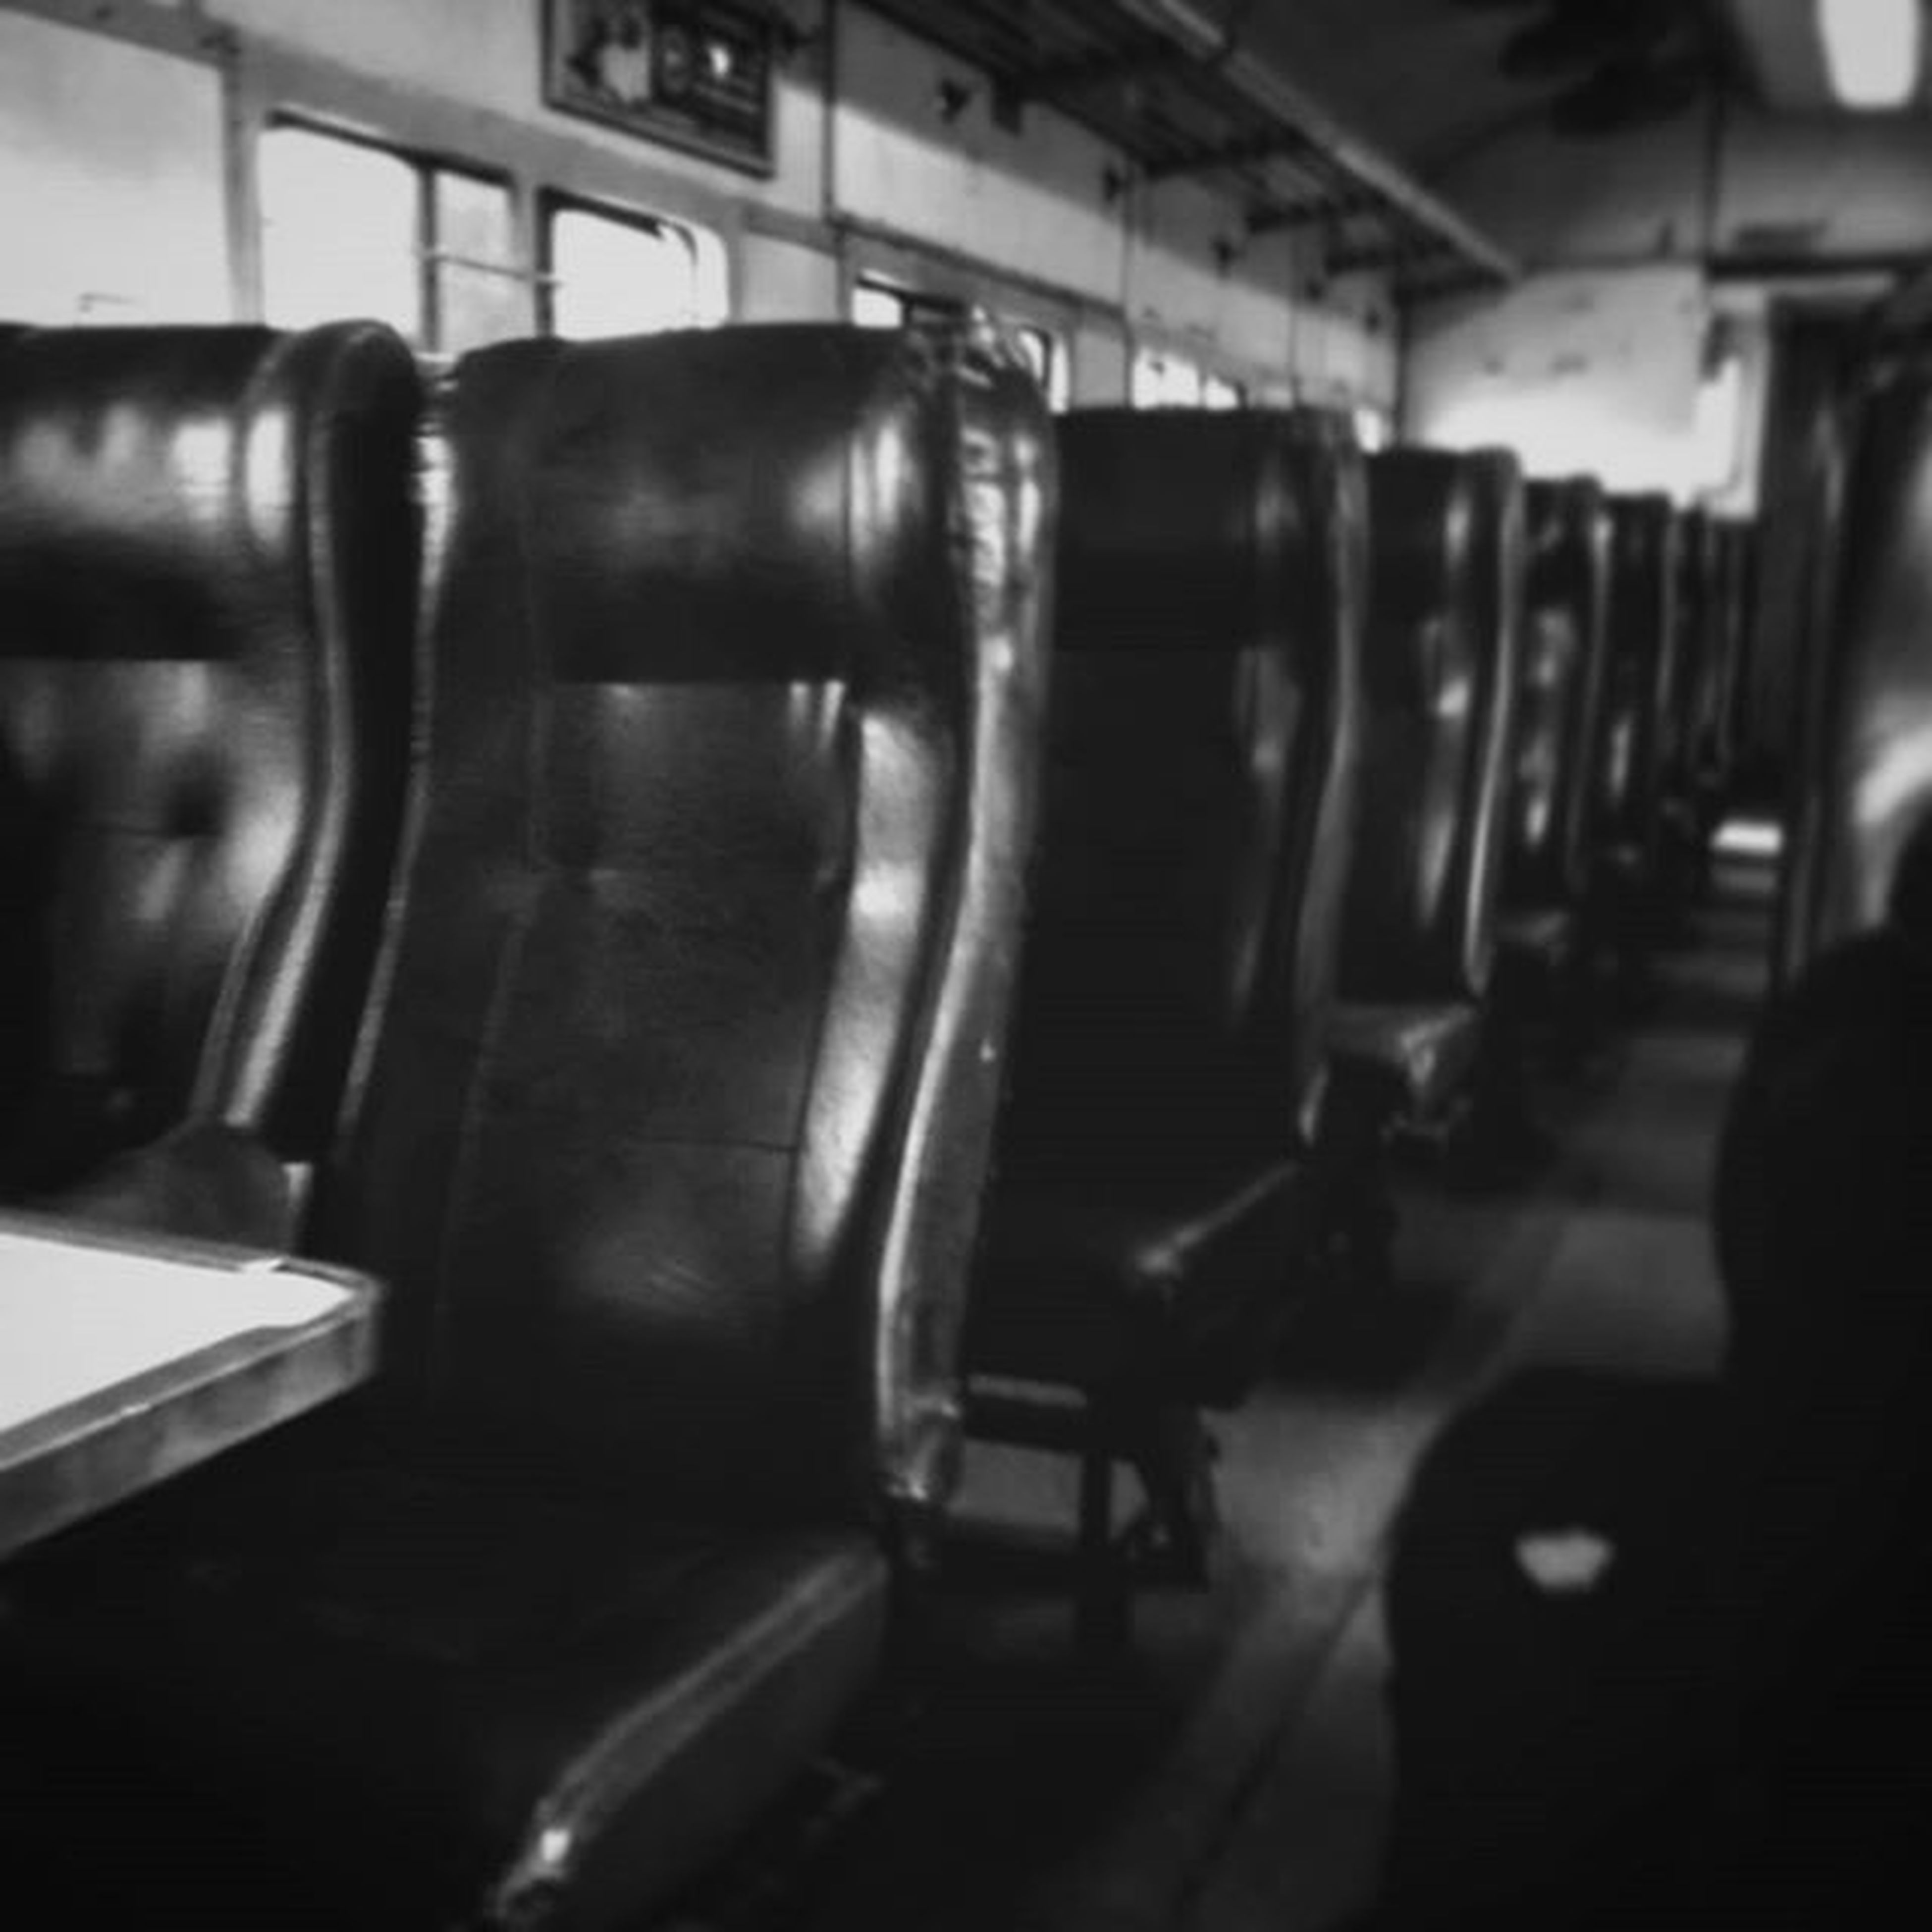 indoors, illuminated, men, incidental people, selective focus, interior, public transportation, empty, absence, window, architecture, transportation, focus on foreground, vehicle seat, in a row, built structure, flooring